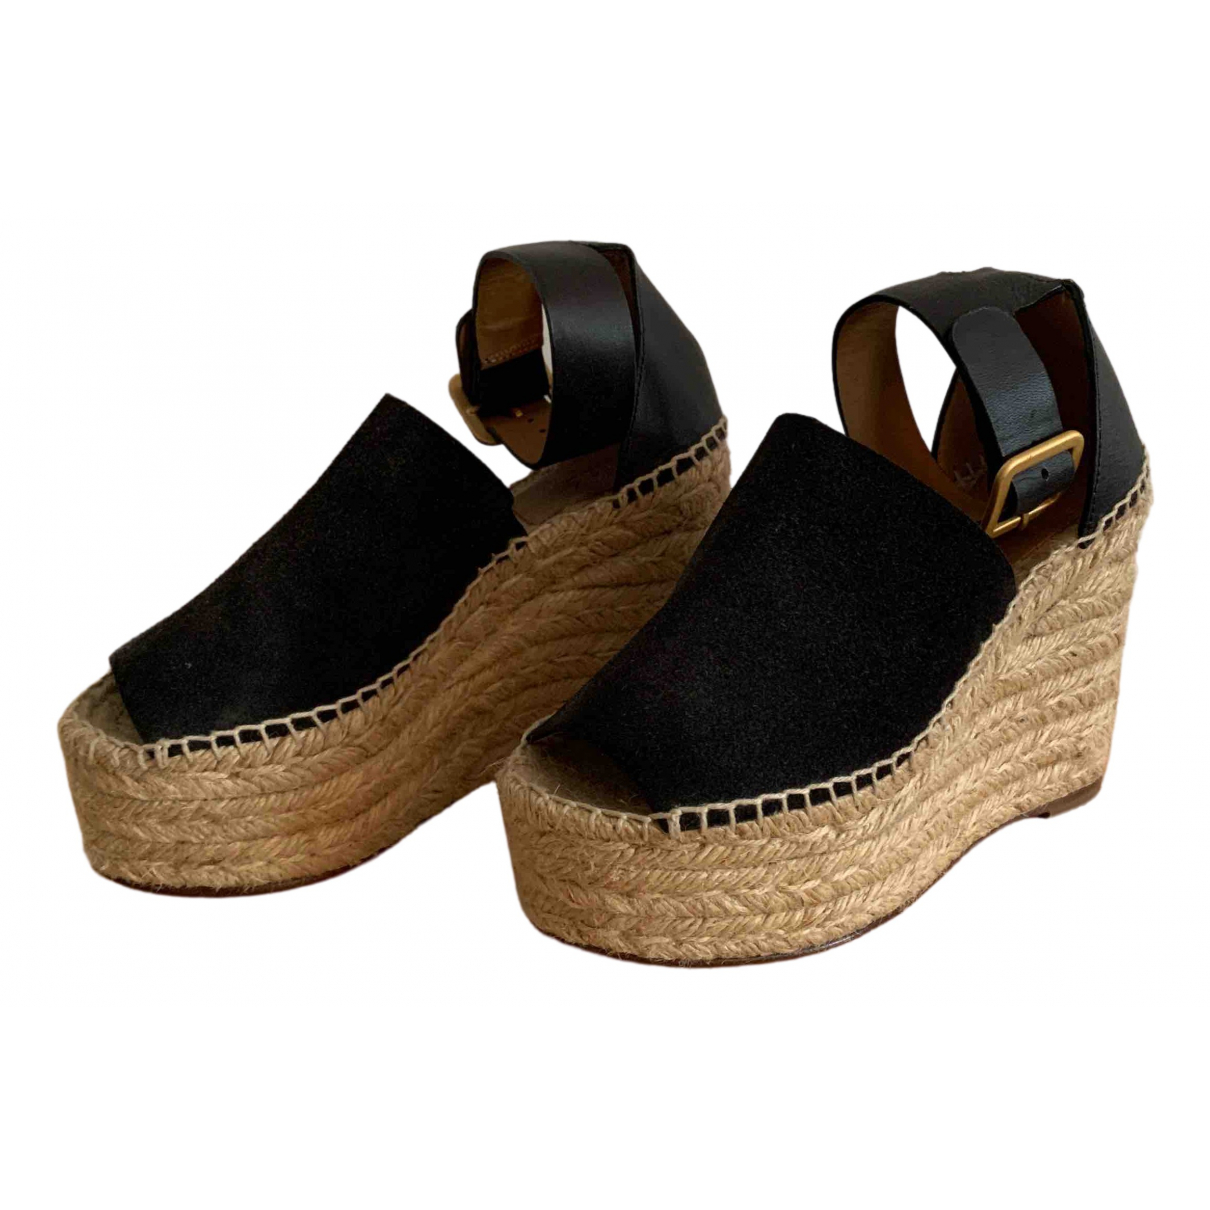 Chloé Lauren Black Suede Espadrilles for Women 34 EU